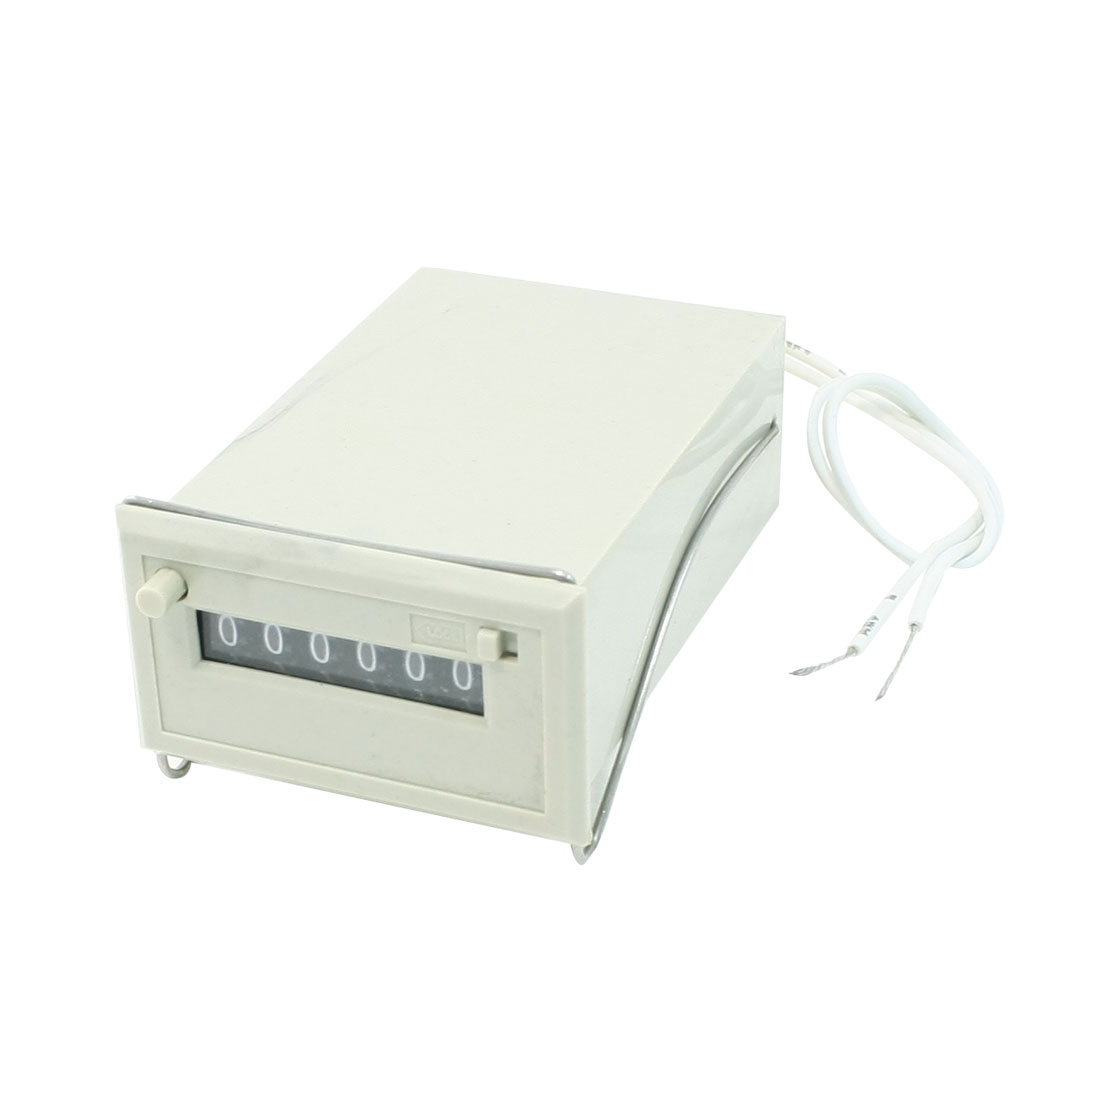 CSK6-CKW DC 24V 50/60Hz 6 Digits 2-Wire Lockable Electronmagnetic Counter